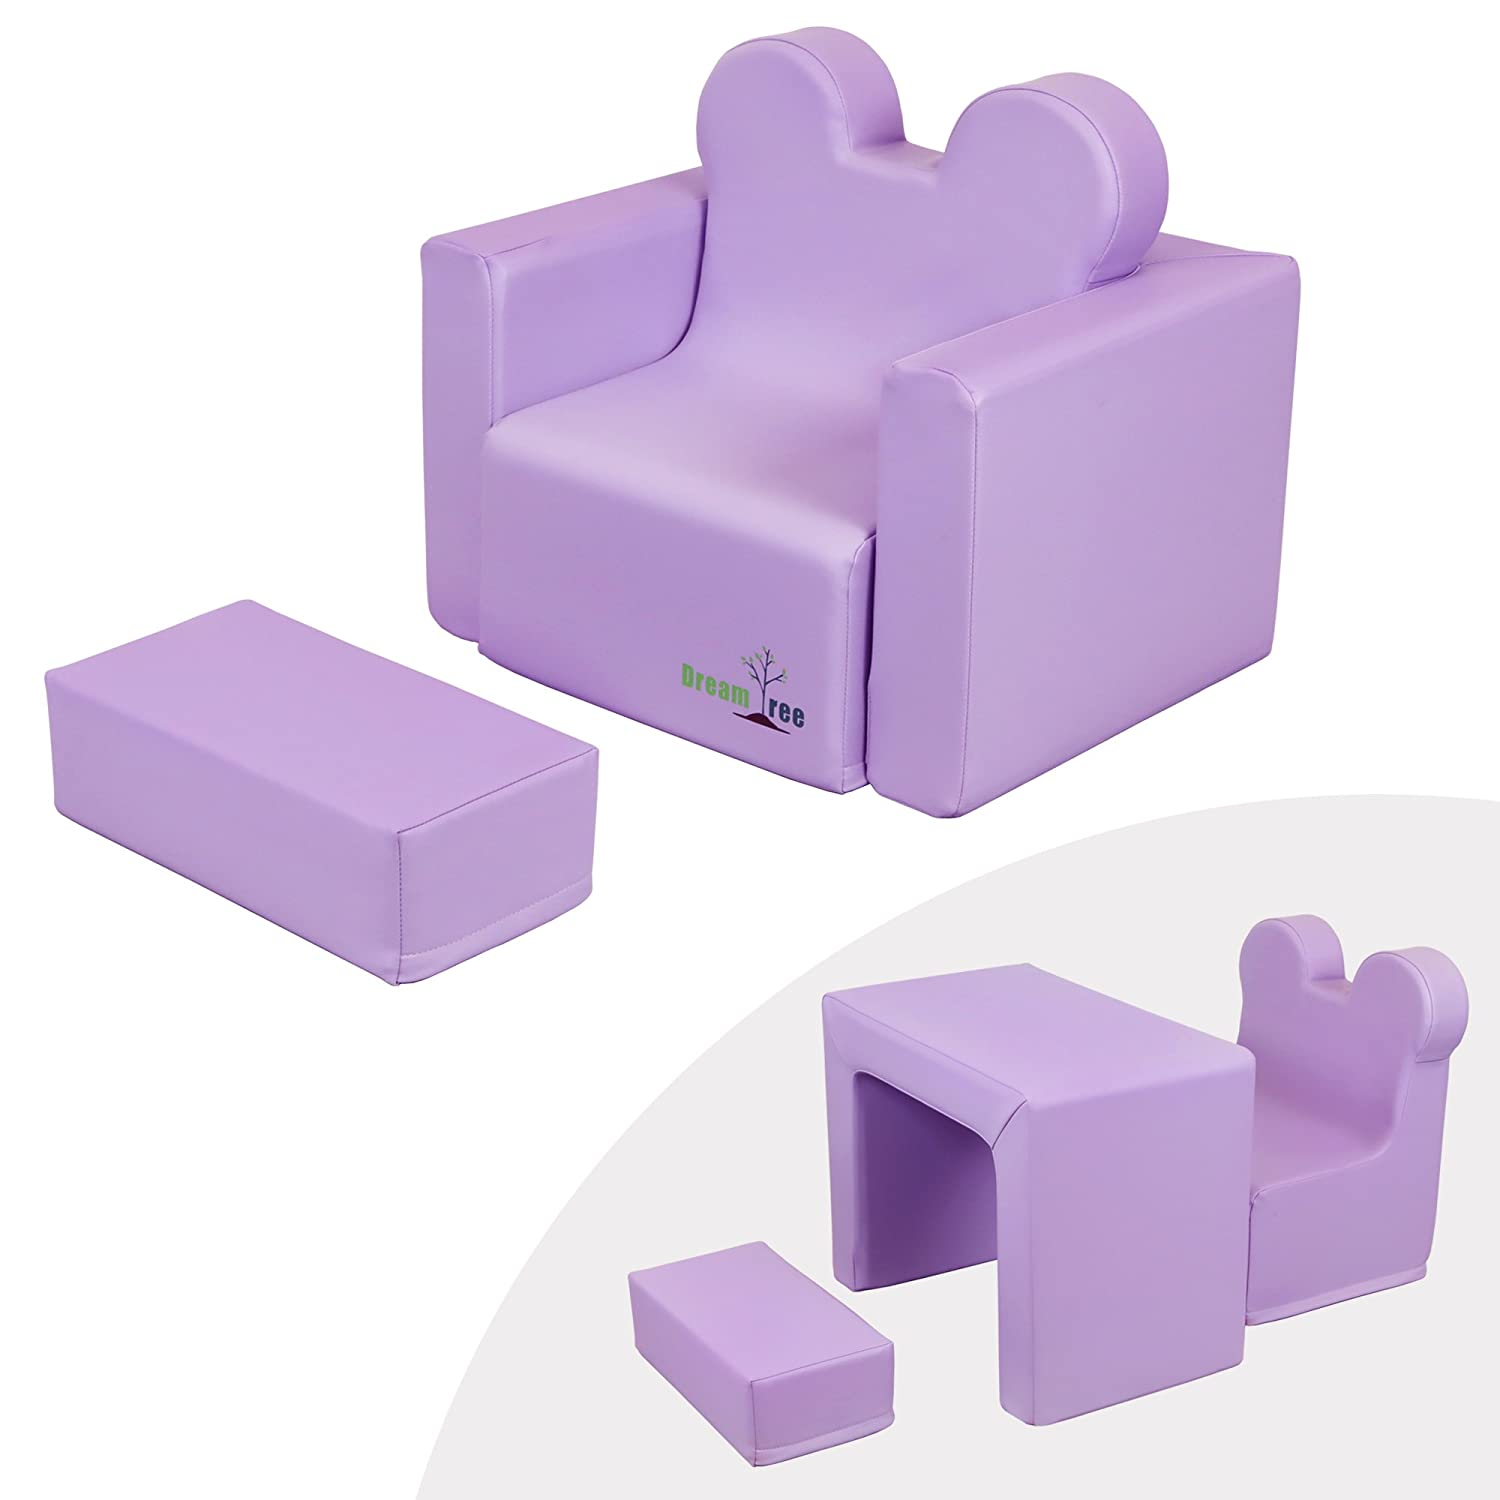 Dream Tree Toddler Table and Chair Set (Sofa Type) Washable, Safe Non-Toxic CPSIA Compliant Soft Foam Furniture for Baby, Kids, and Child - Pink DT-SD-PK